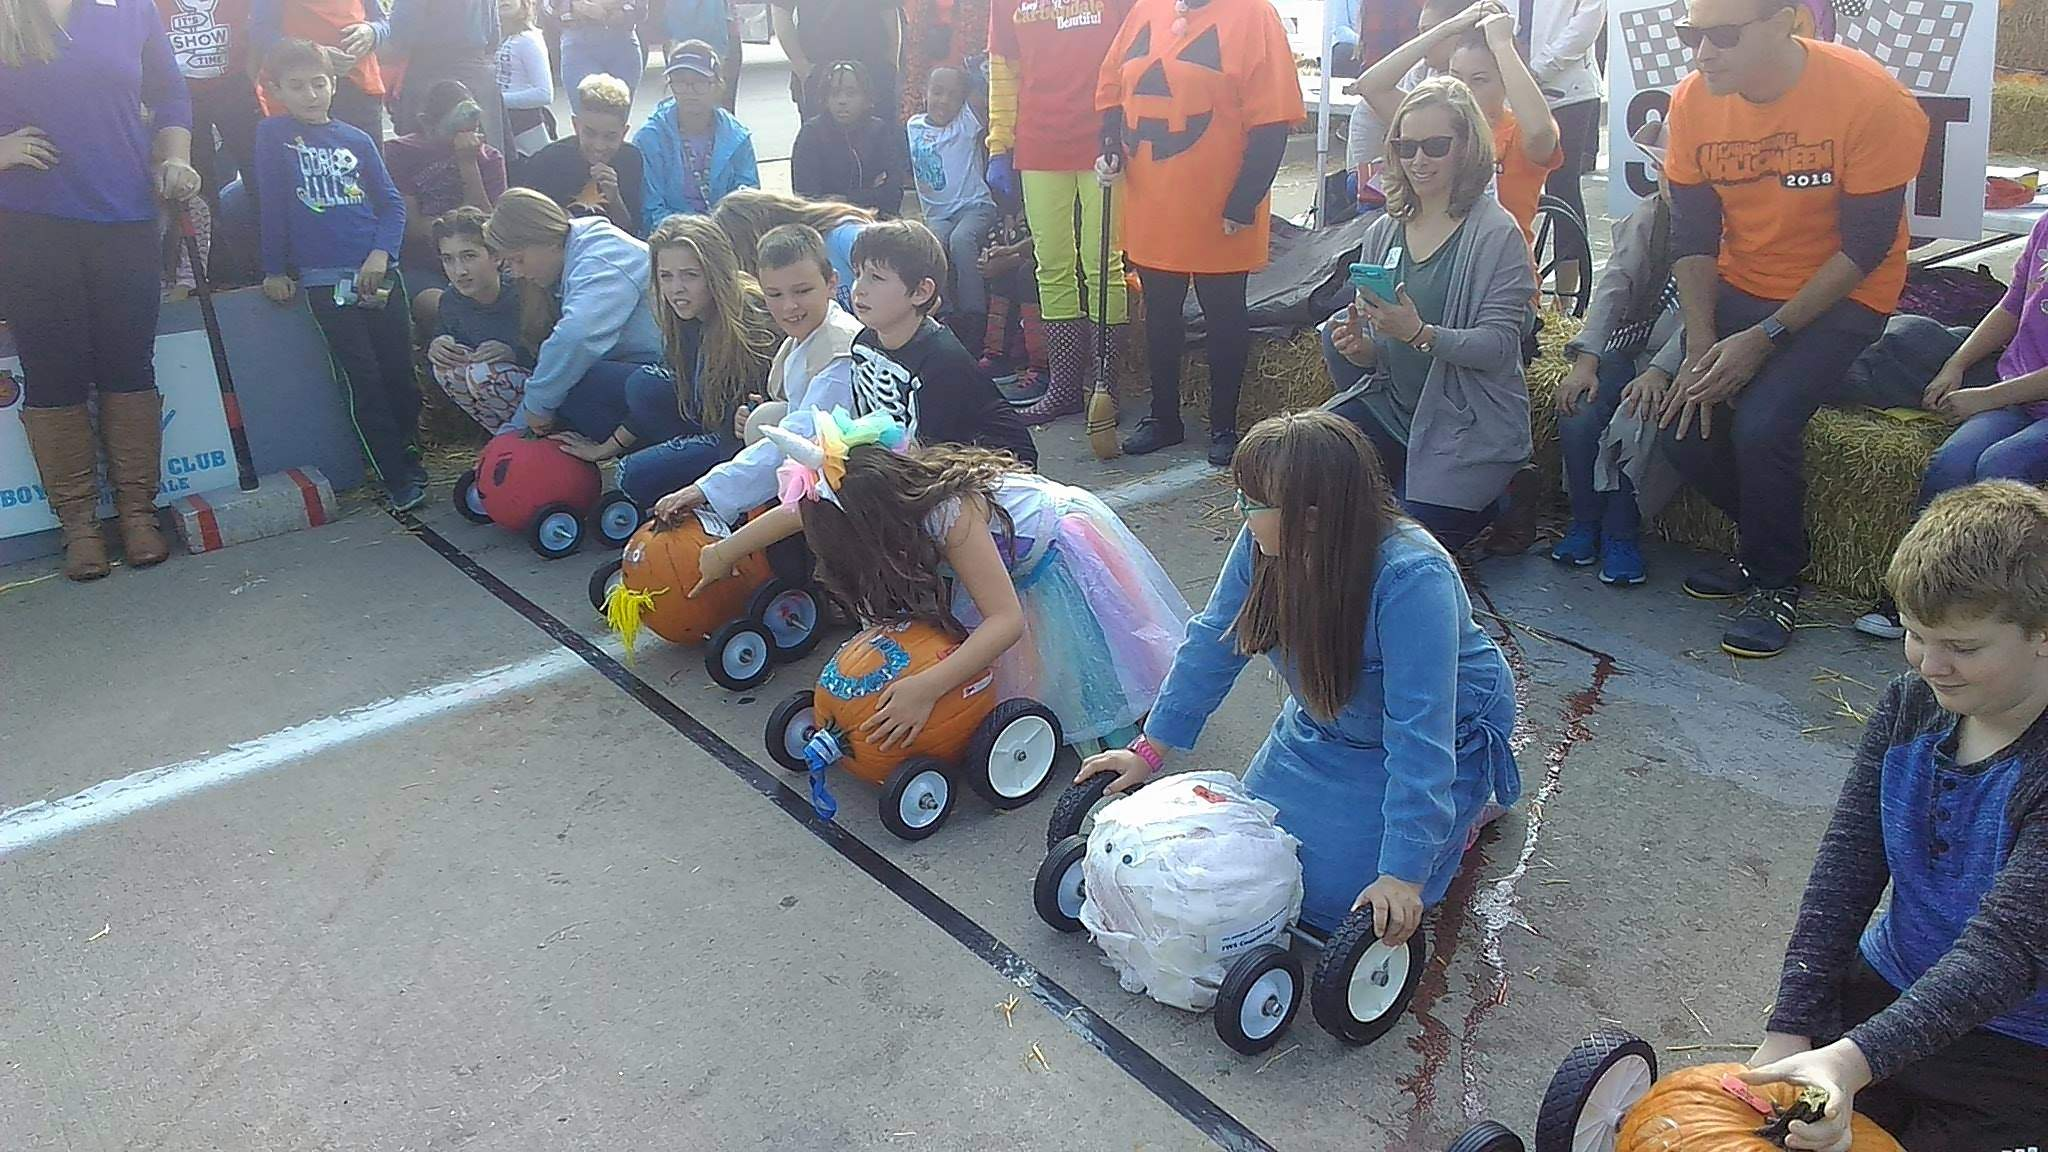 Racers wait at the starting line of Saturday's pumpkin races at the Mill Street Underpass.